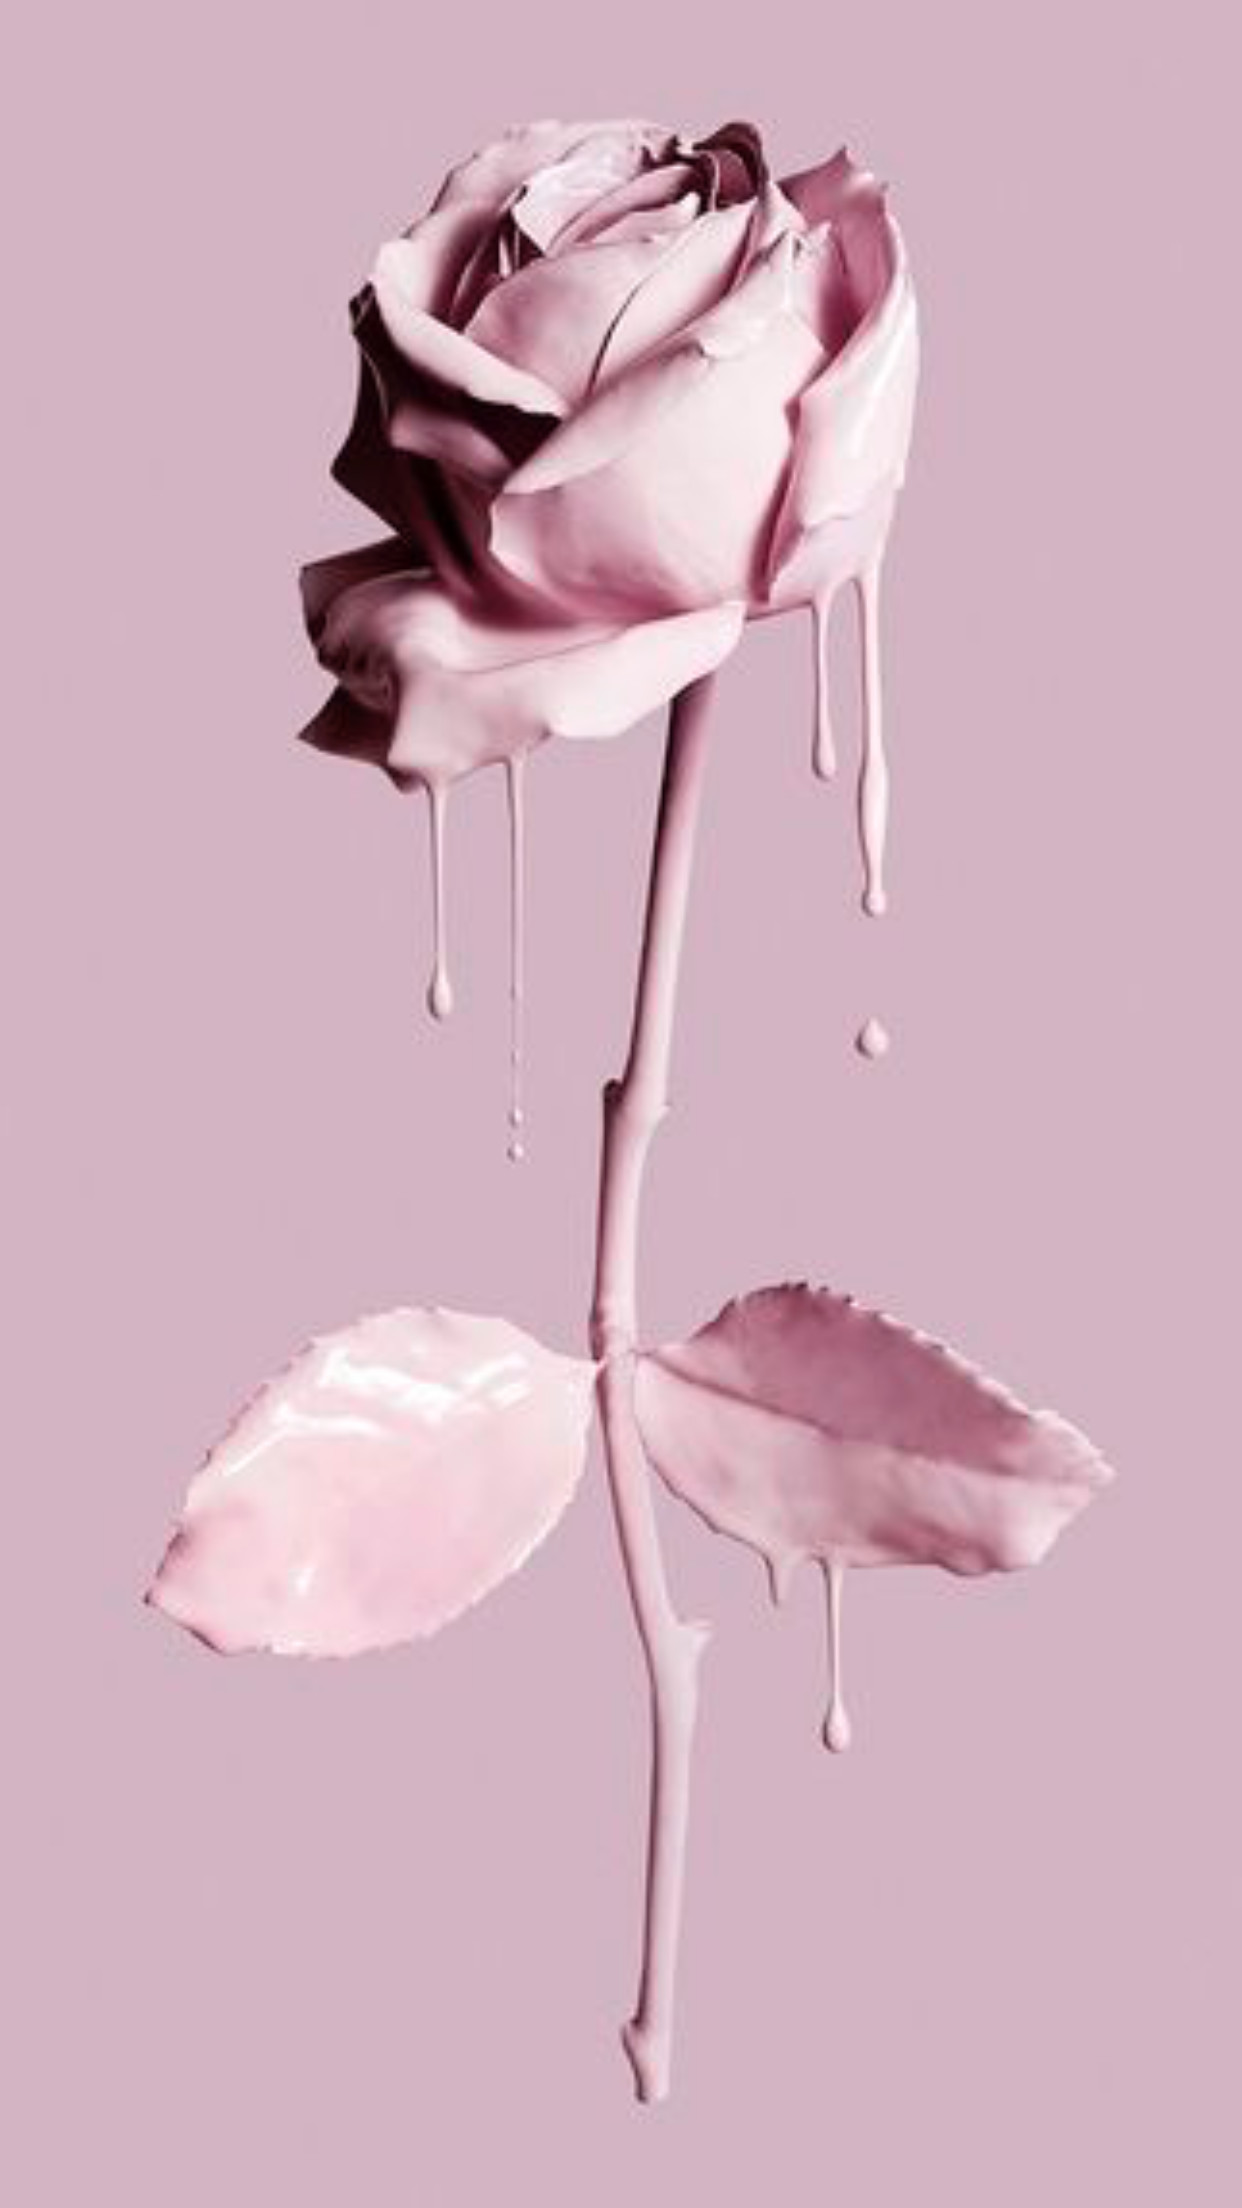 Res: 1242x2208, Backgrounds Of Painting The Rose Pink Like Wallpaper And Roses Hd Pics  Smartphone